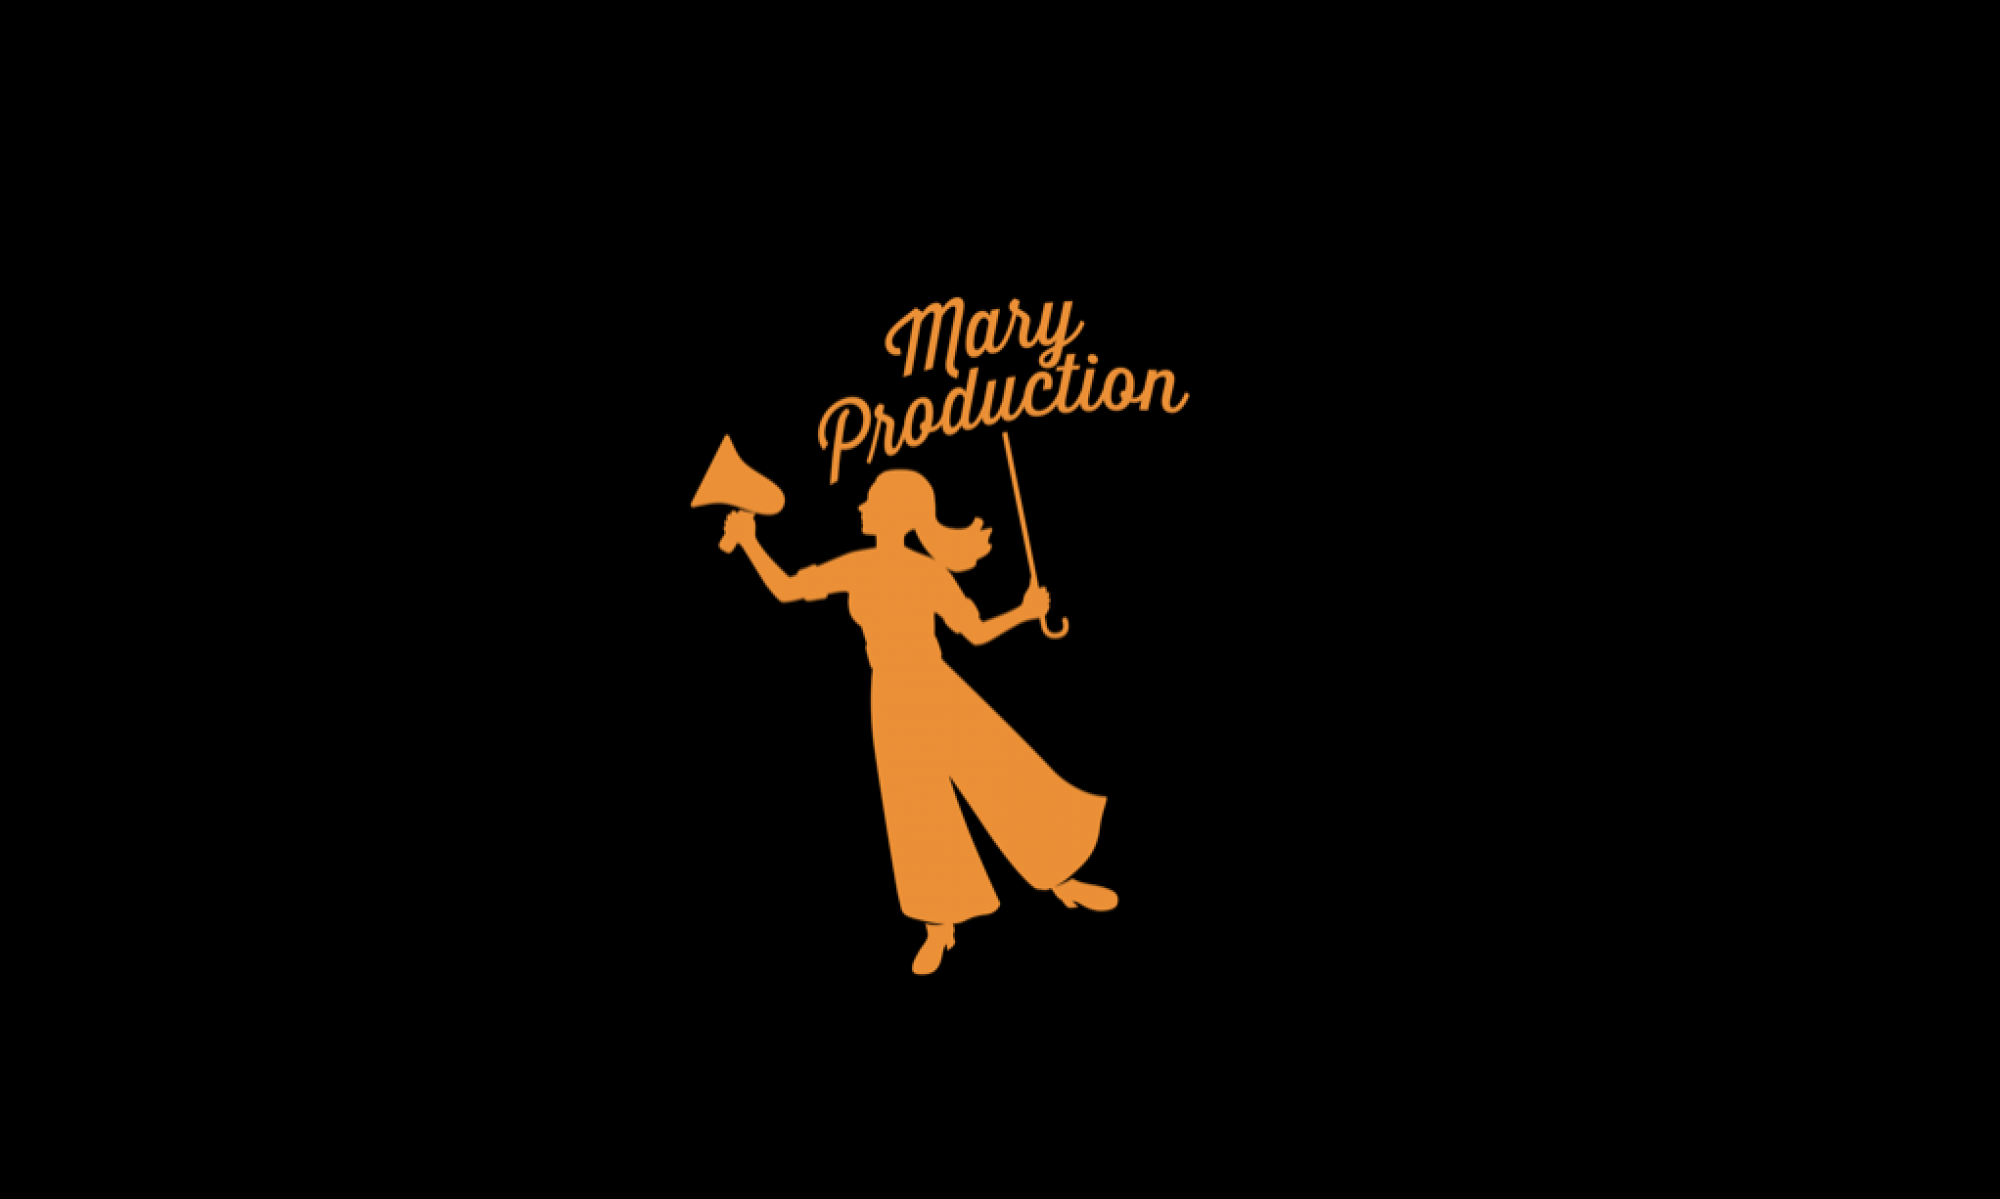 mary production